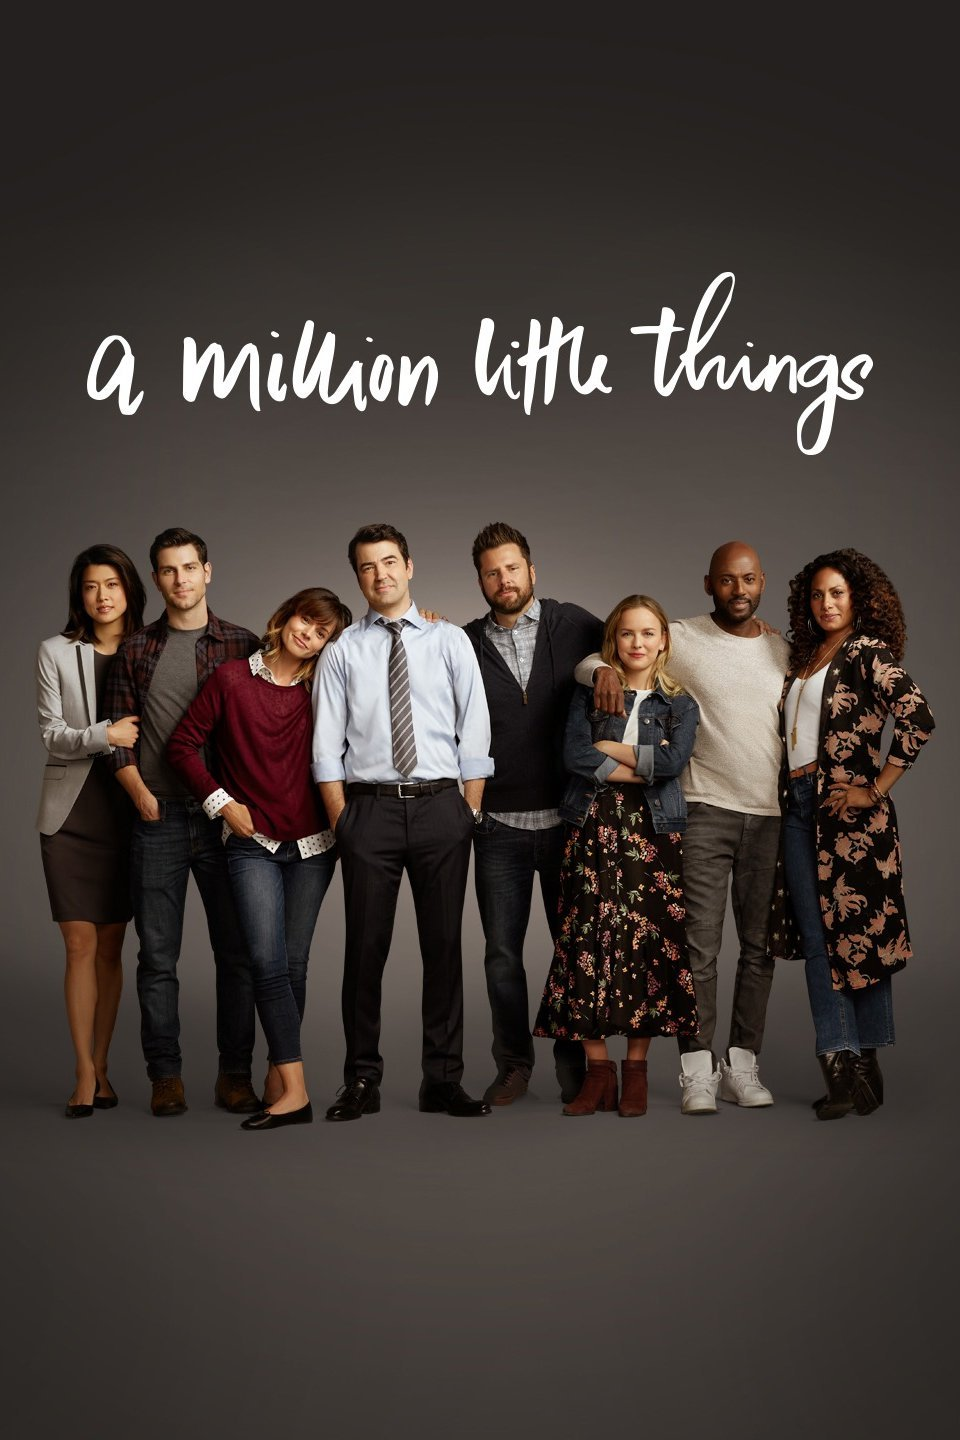 A Million Little Things - Season 2 Episode 14 - the sleepover